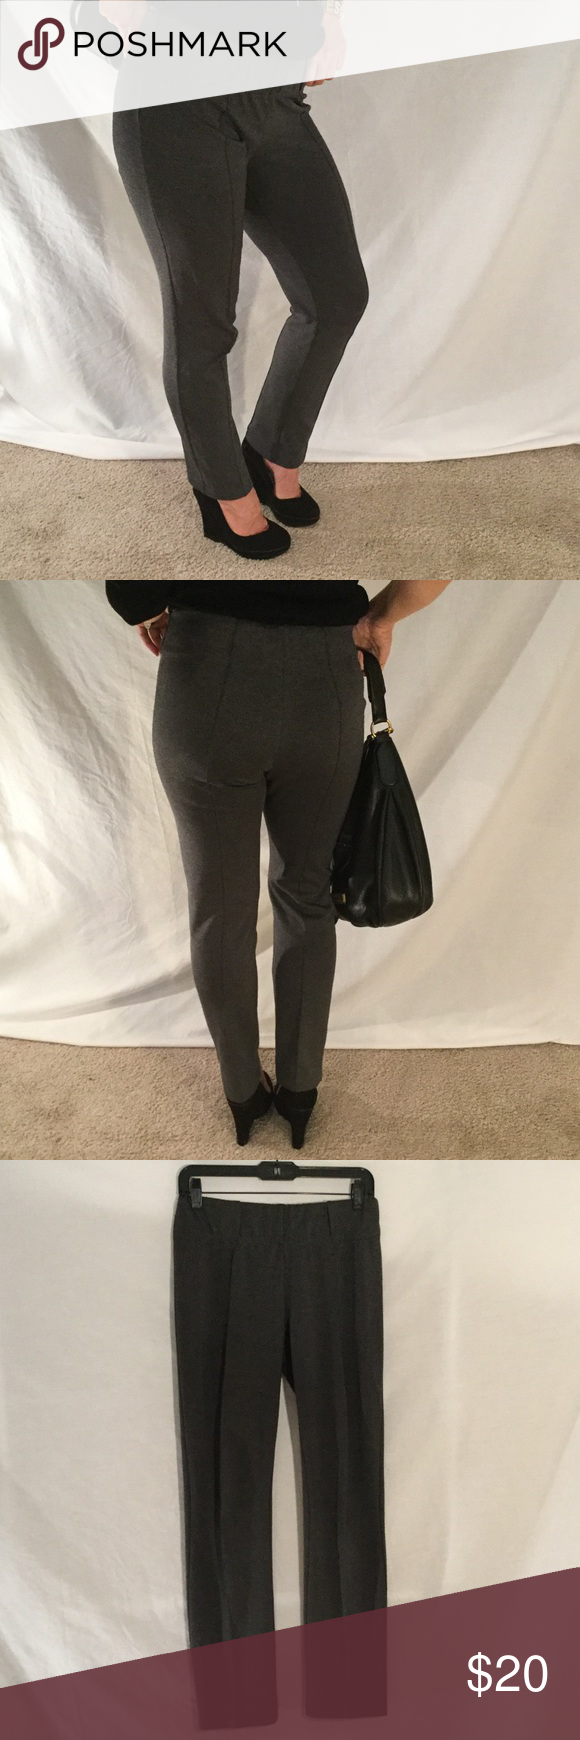 """BCBG's classic thick & PLUSH """"Pointe"""" legging sz M BCBG's signature pointe pant- but in s stretch legging! 2"""" stretch waistband makes for flattering look around waist and booty. Tapered  pant leg: 72% poly, 25% rayon, 5% spandex. M Size medium comfortably fits size 4 or 6. I'm a size six when this photo was taken. Pants are in good condition with very minimal pilling at top of waist band. Offers through offer button please and thanks❤️🙏🏻 BCBGMaxAzria Pants Skinny"""